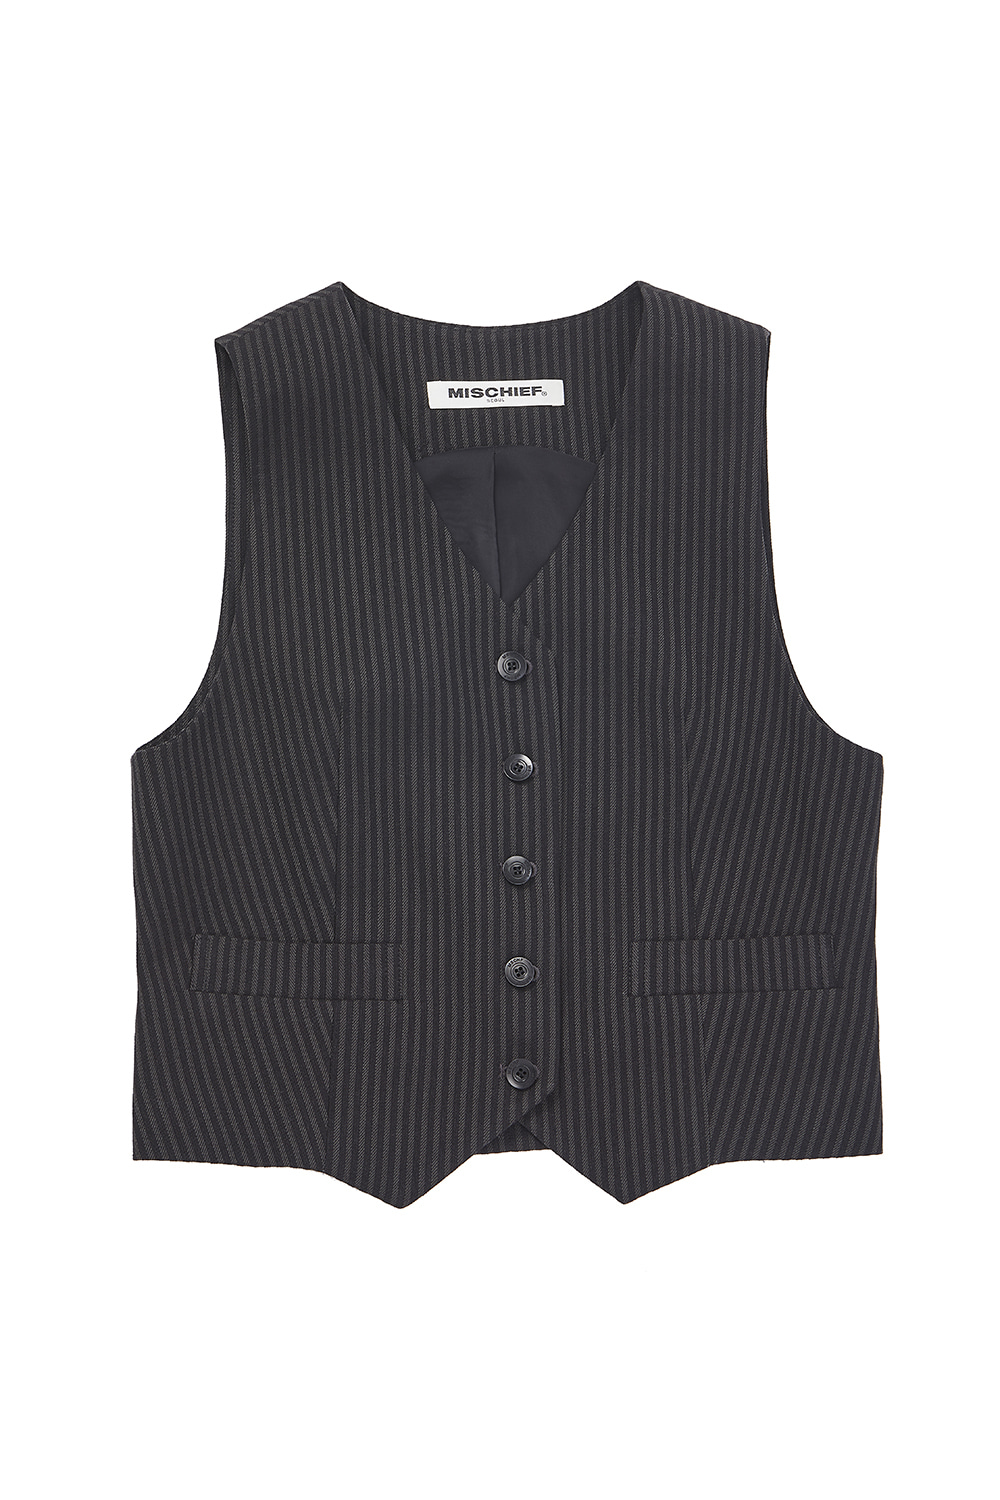 ZOOTIES VEST_stripe black/gray